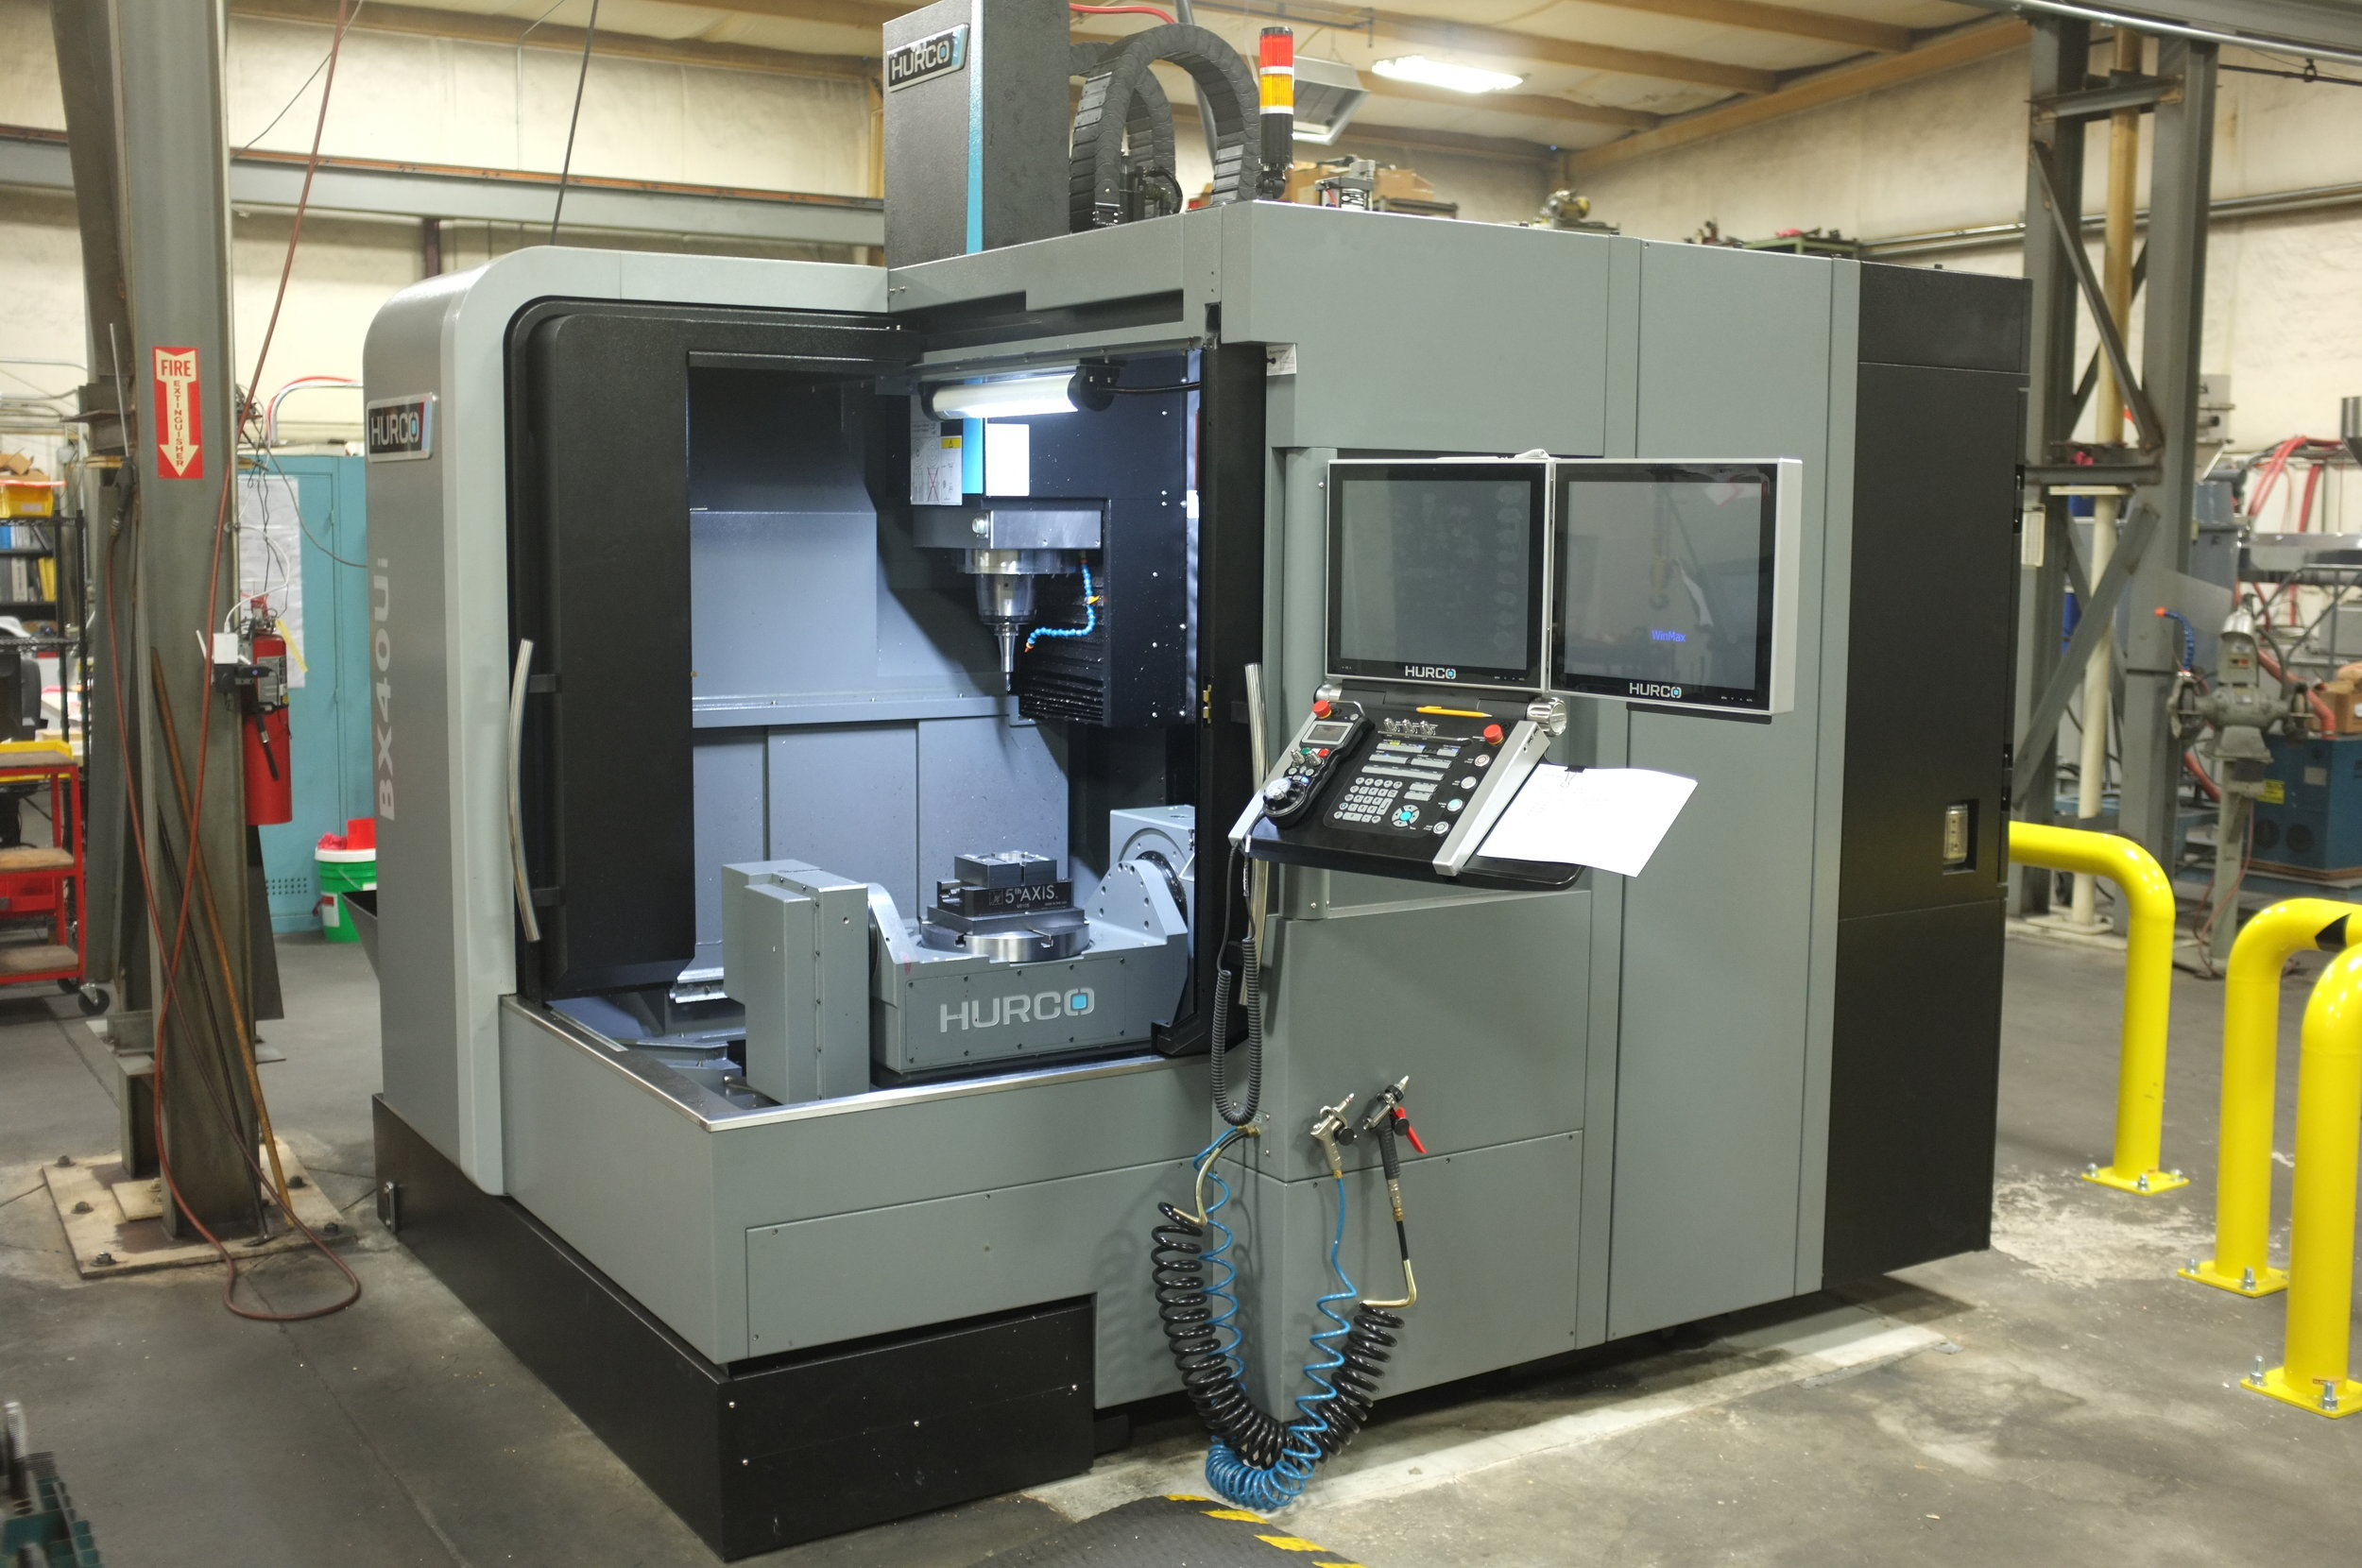 Hurco BX40i 5-axis mill